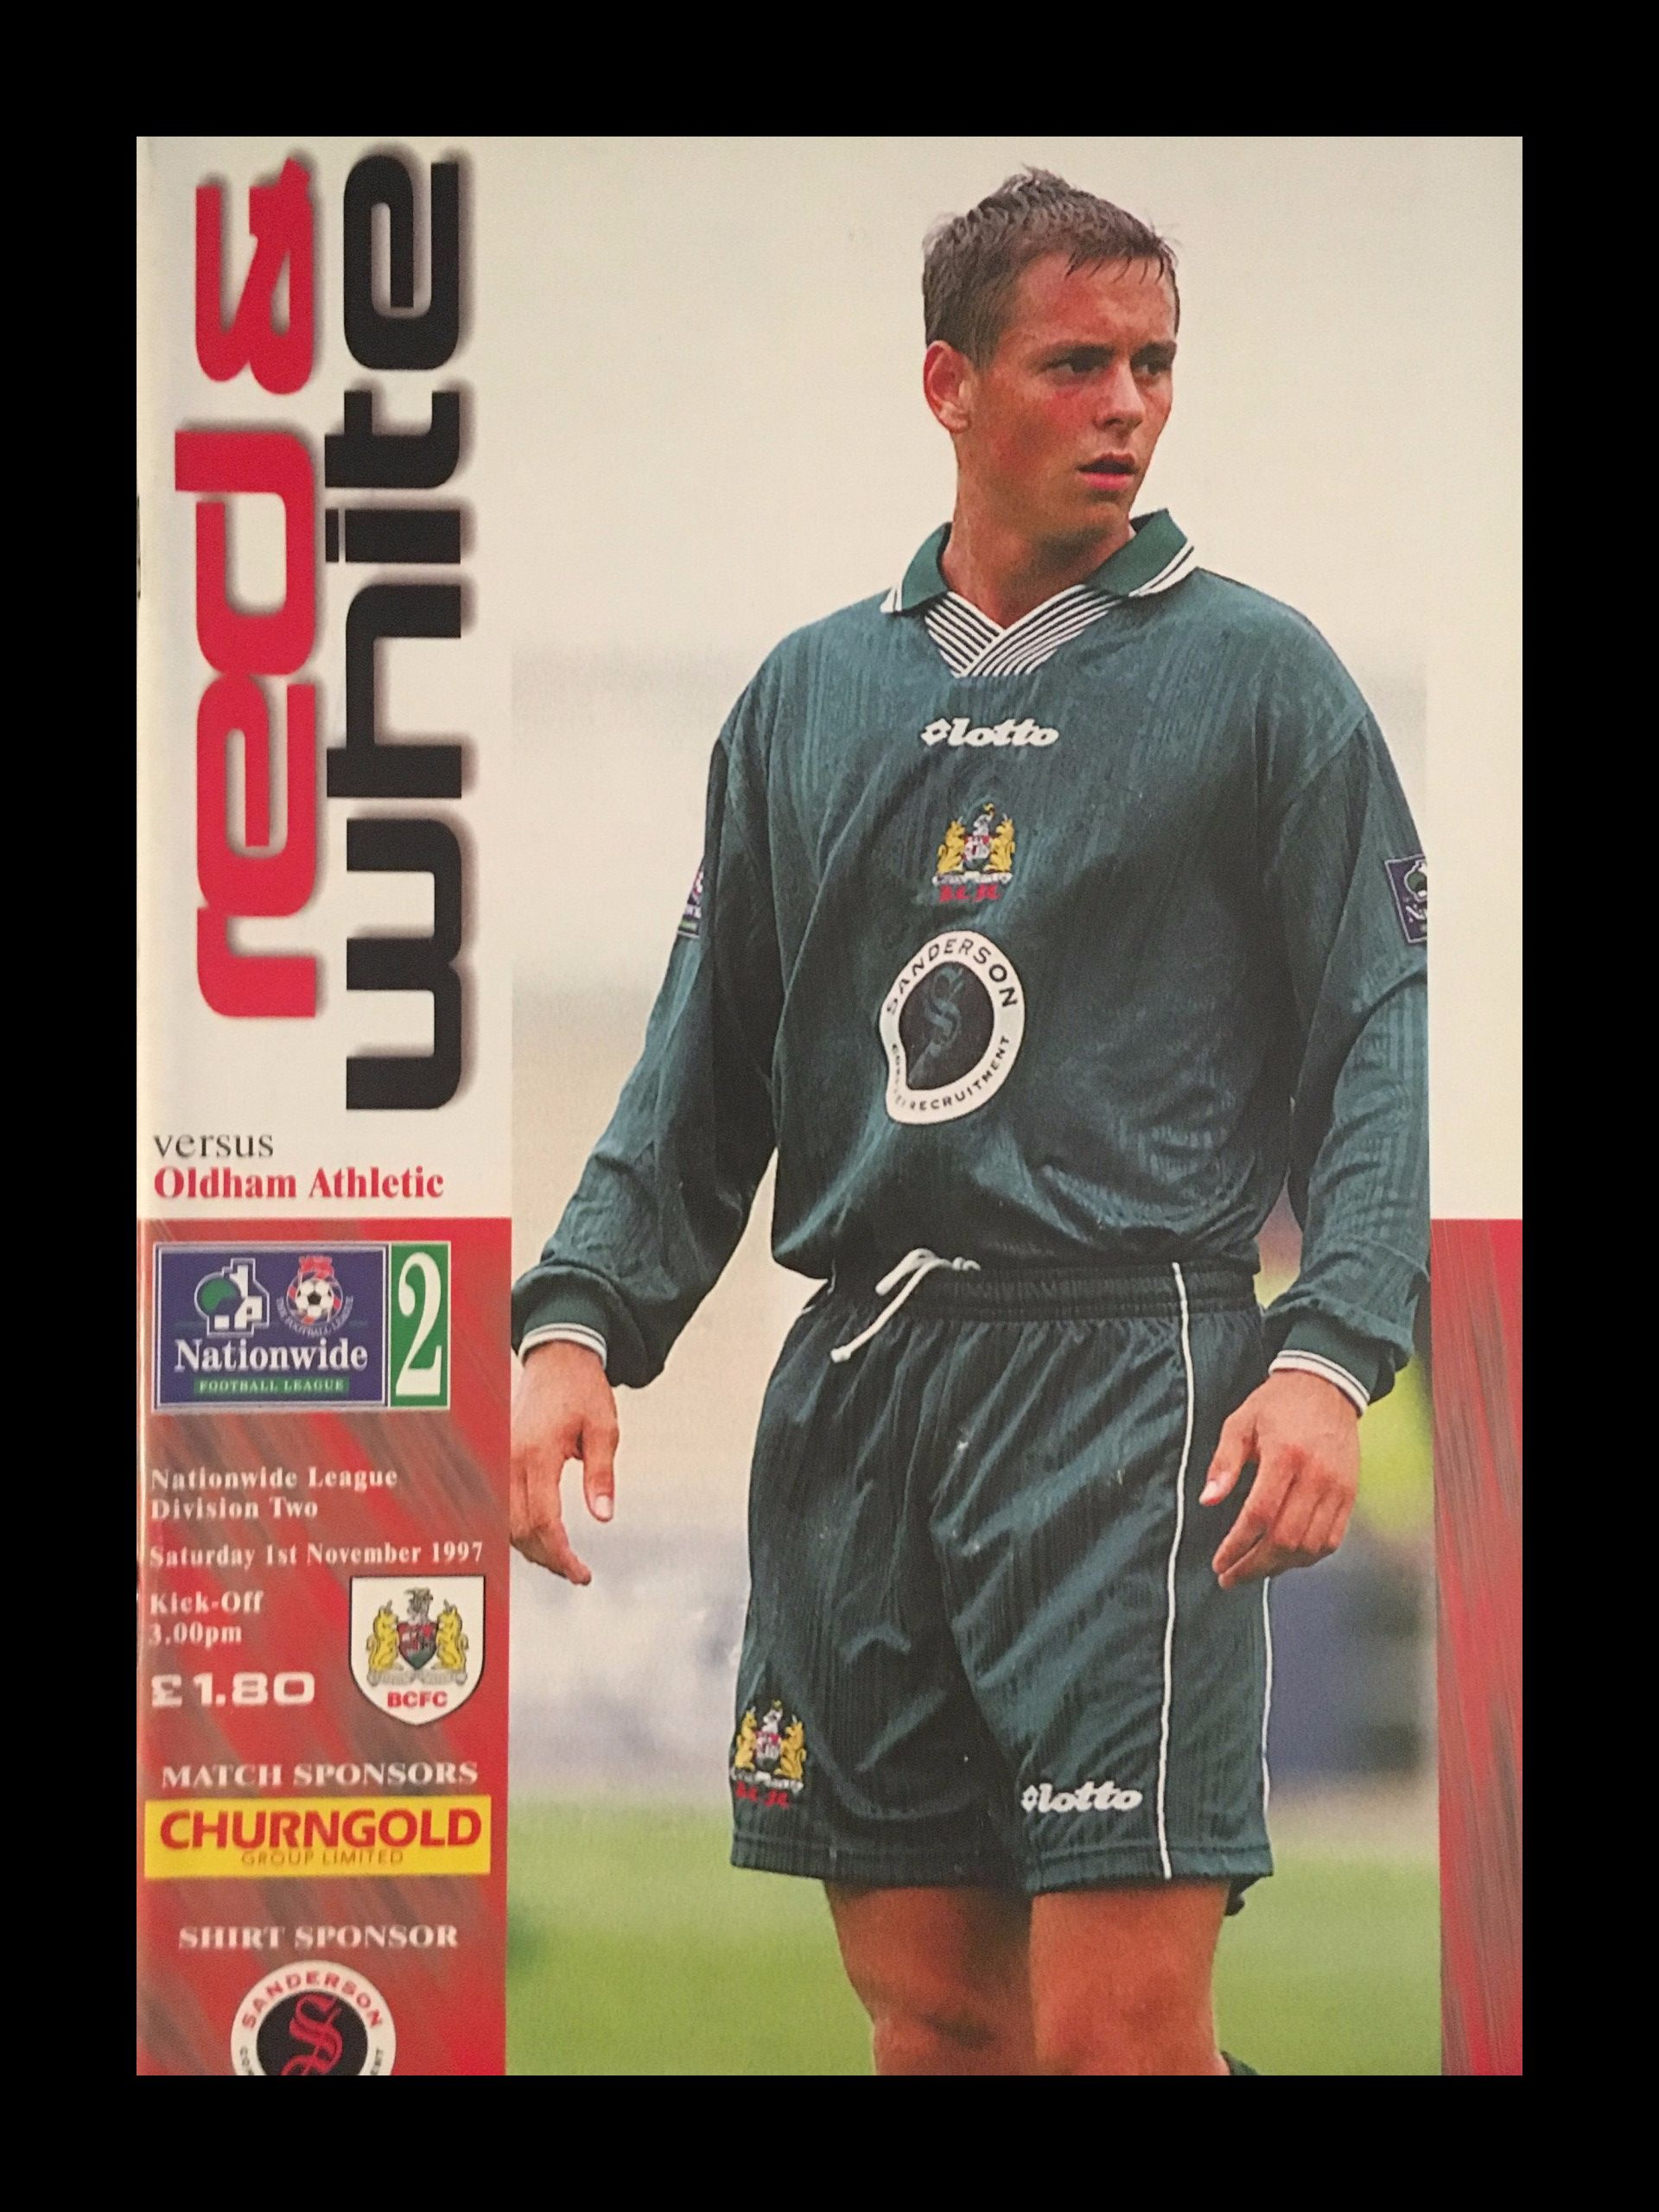 Bristol City v Oldham Athletic 01-11-1997 Programme